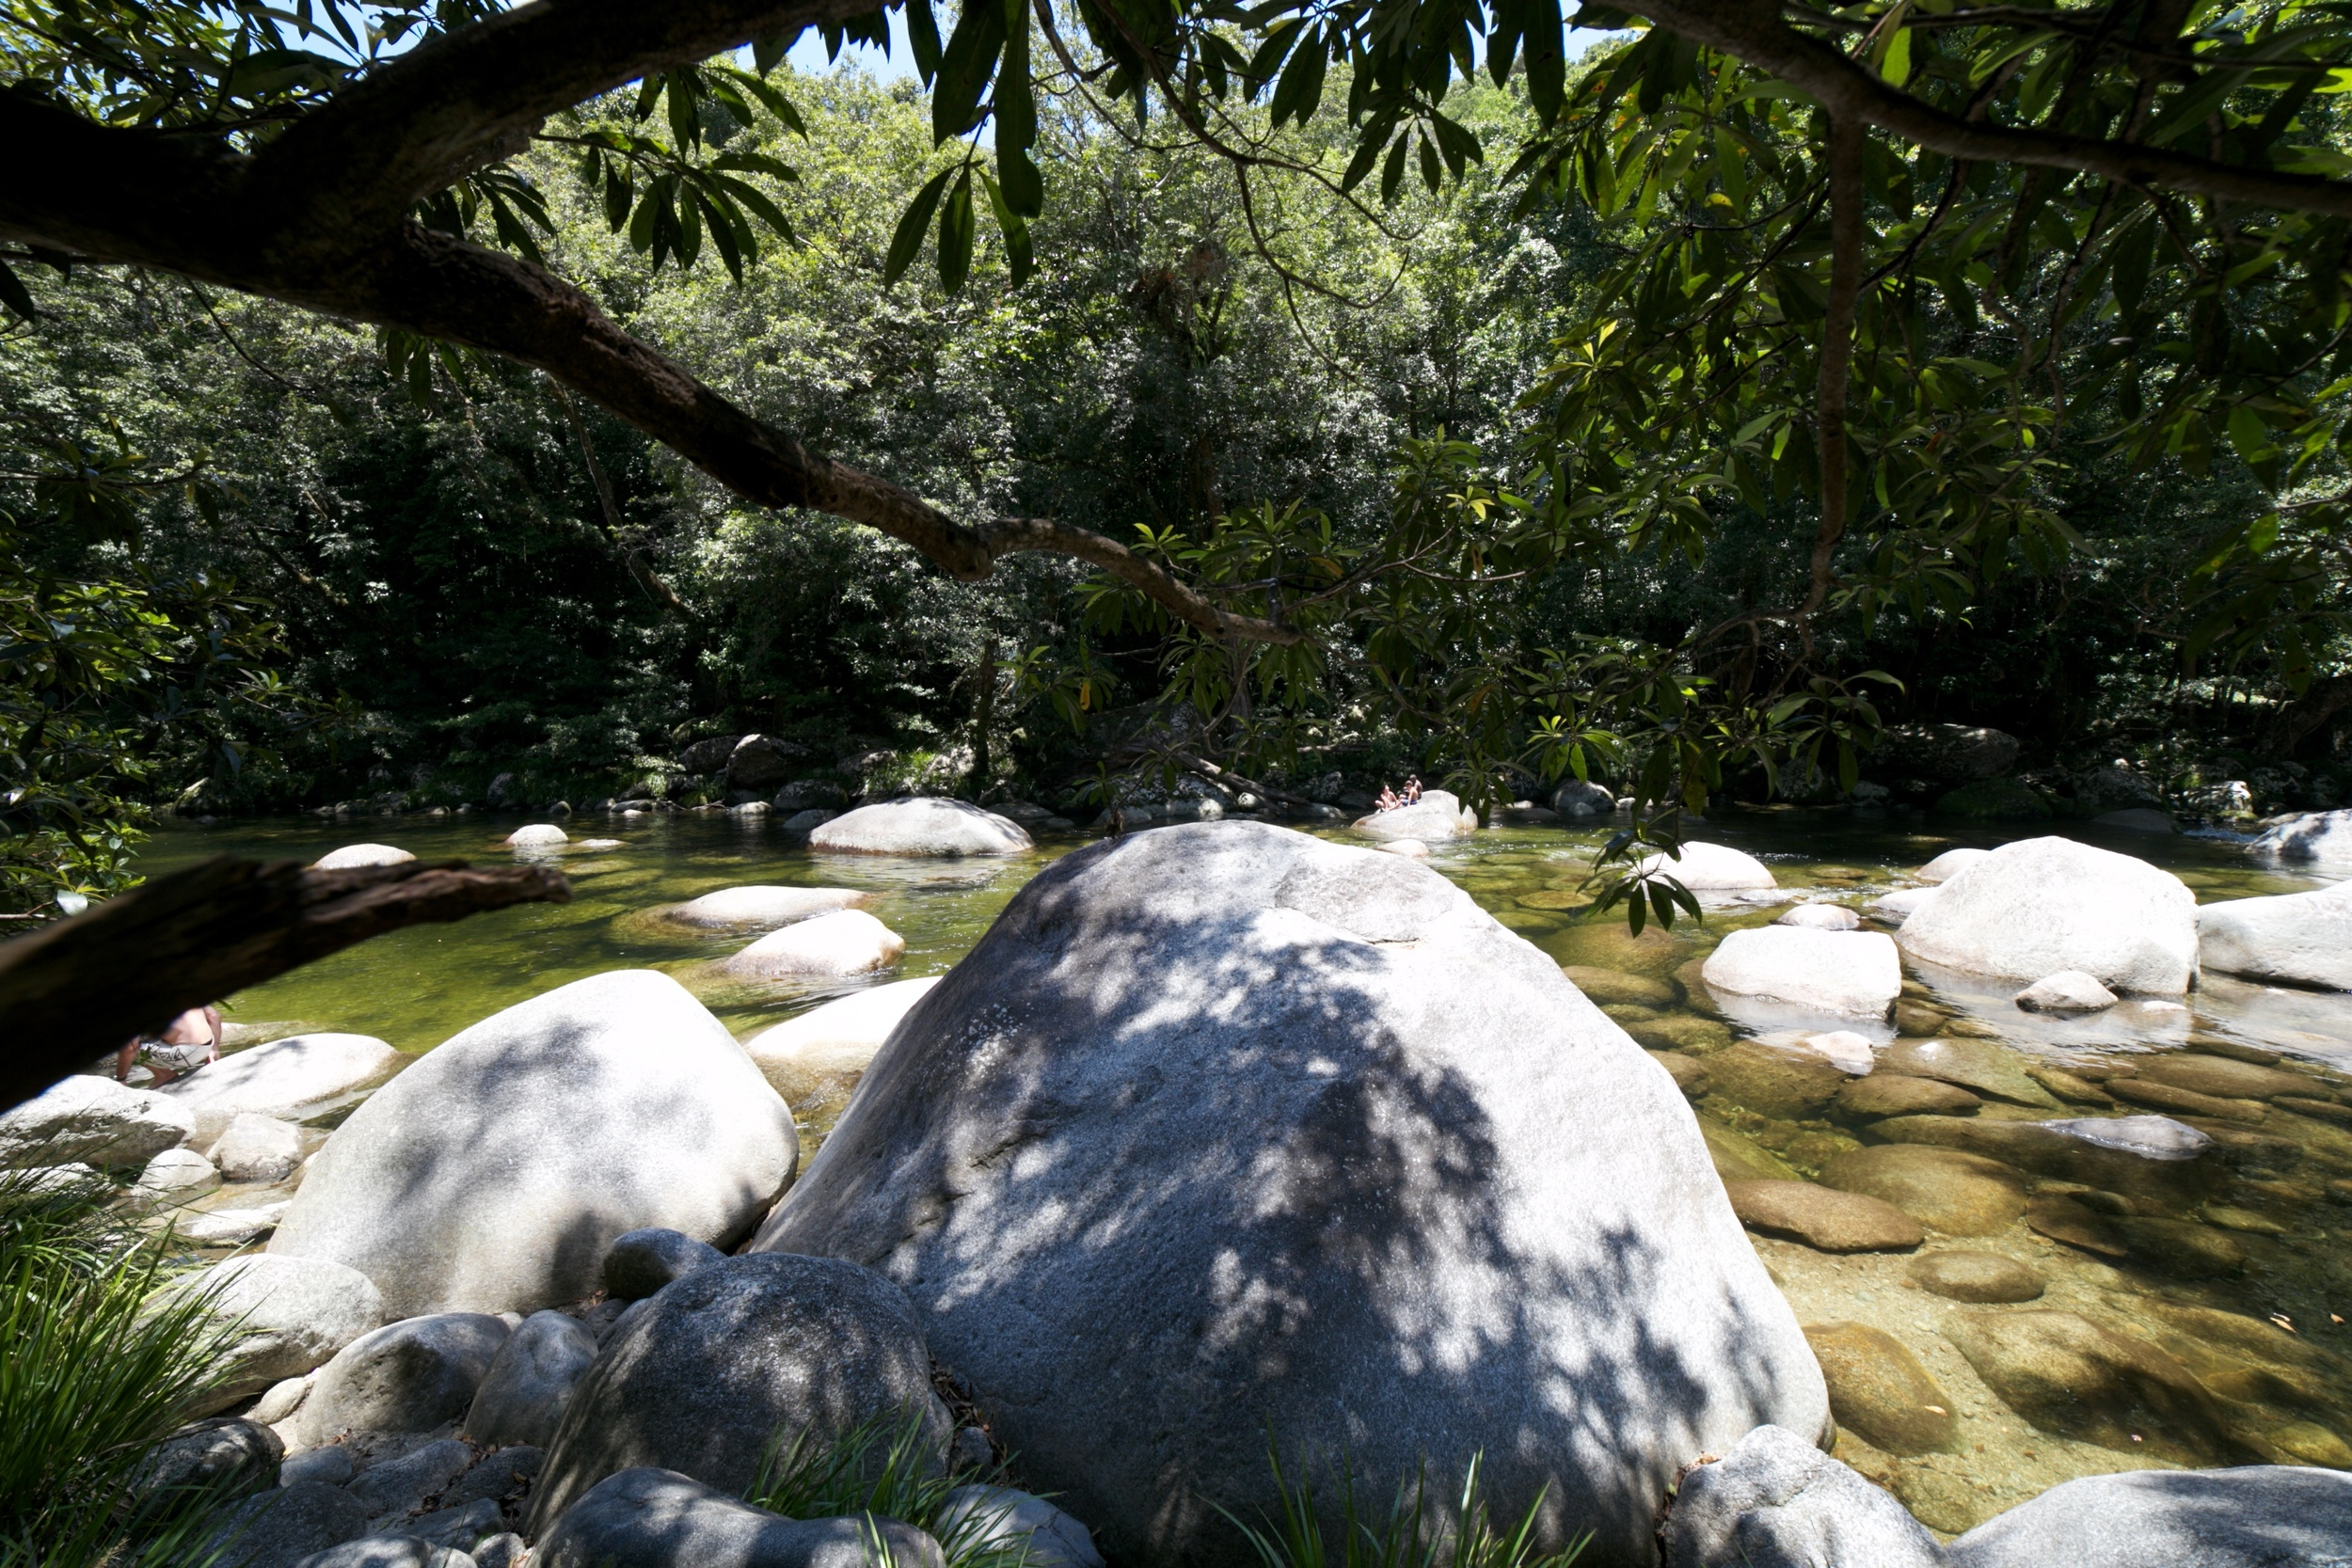 Boulders in the river at the Mossman Gorge.